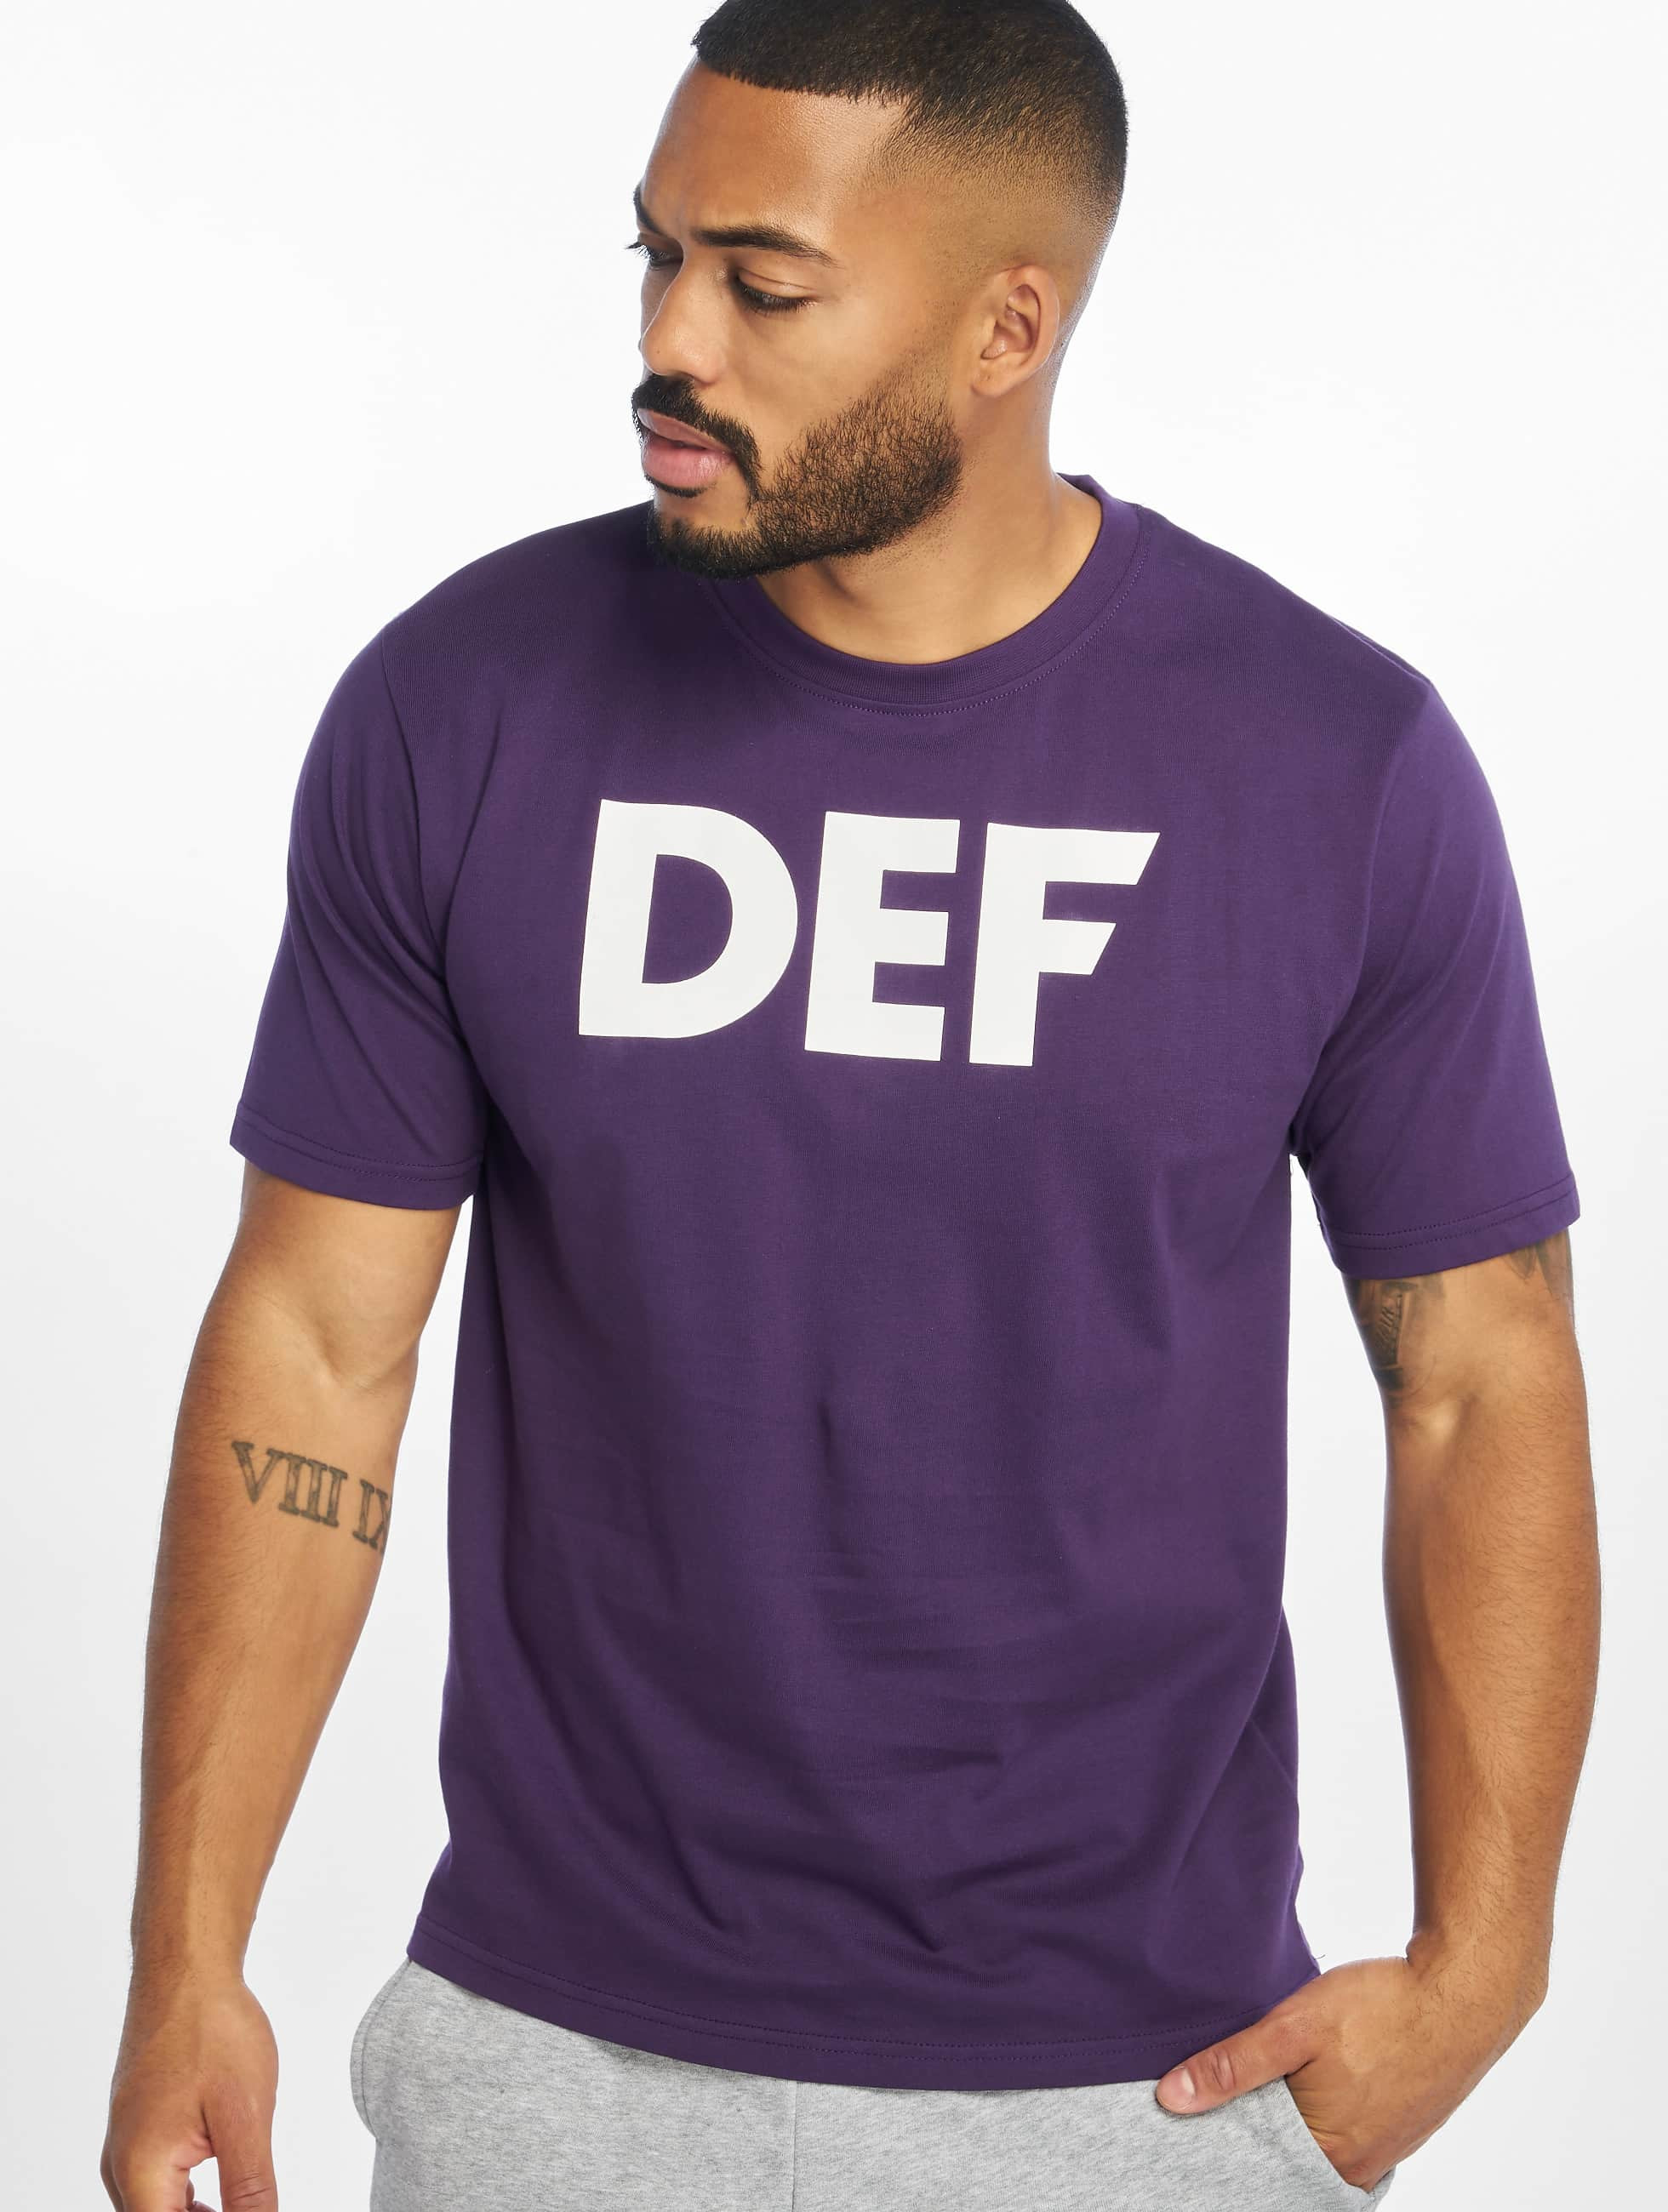 DEF / T-Shirt Her Secret in purple XL